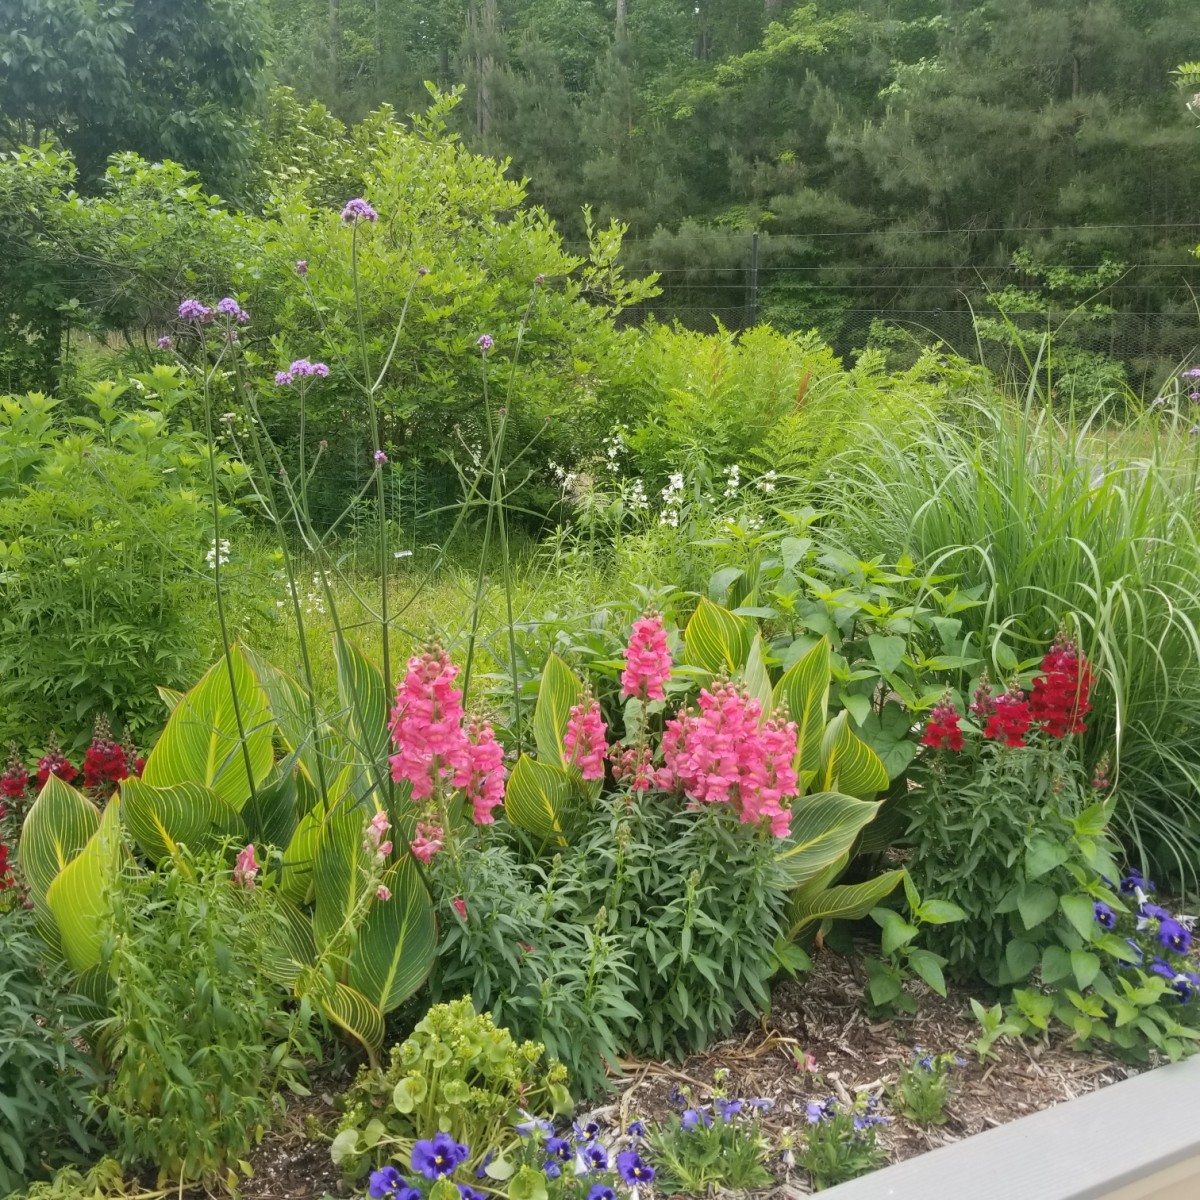 Stop by Freedom Park to see the pretty botanical gardens. It is pet-friendly too.